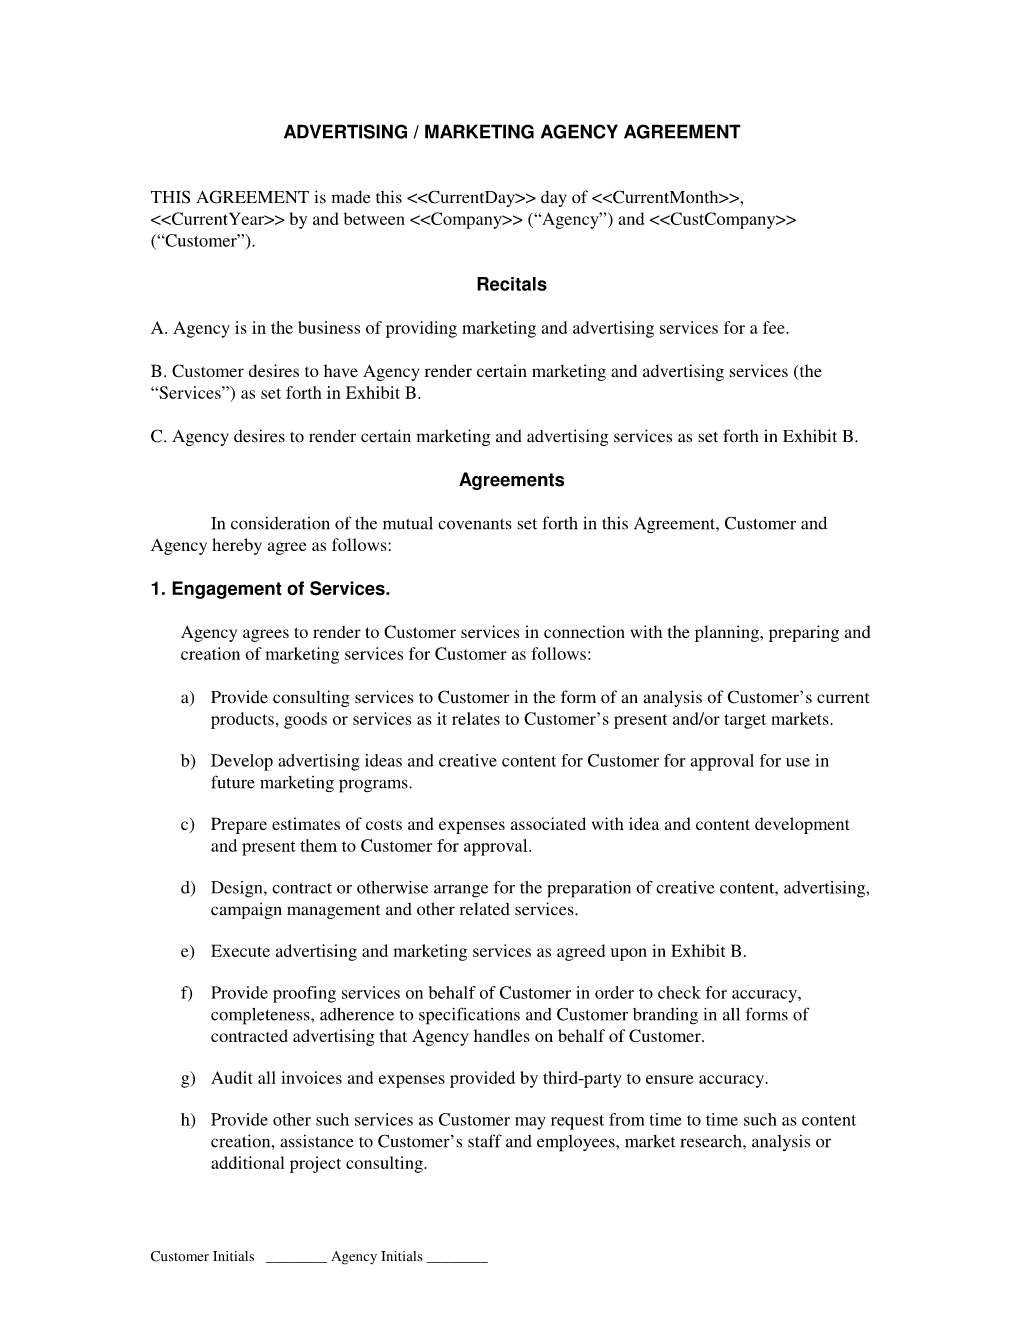 SEO Marketing Agency Agreement